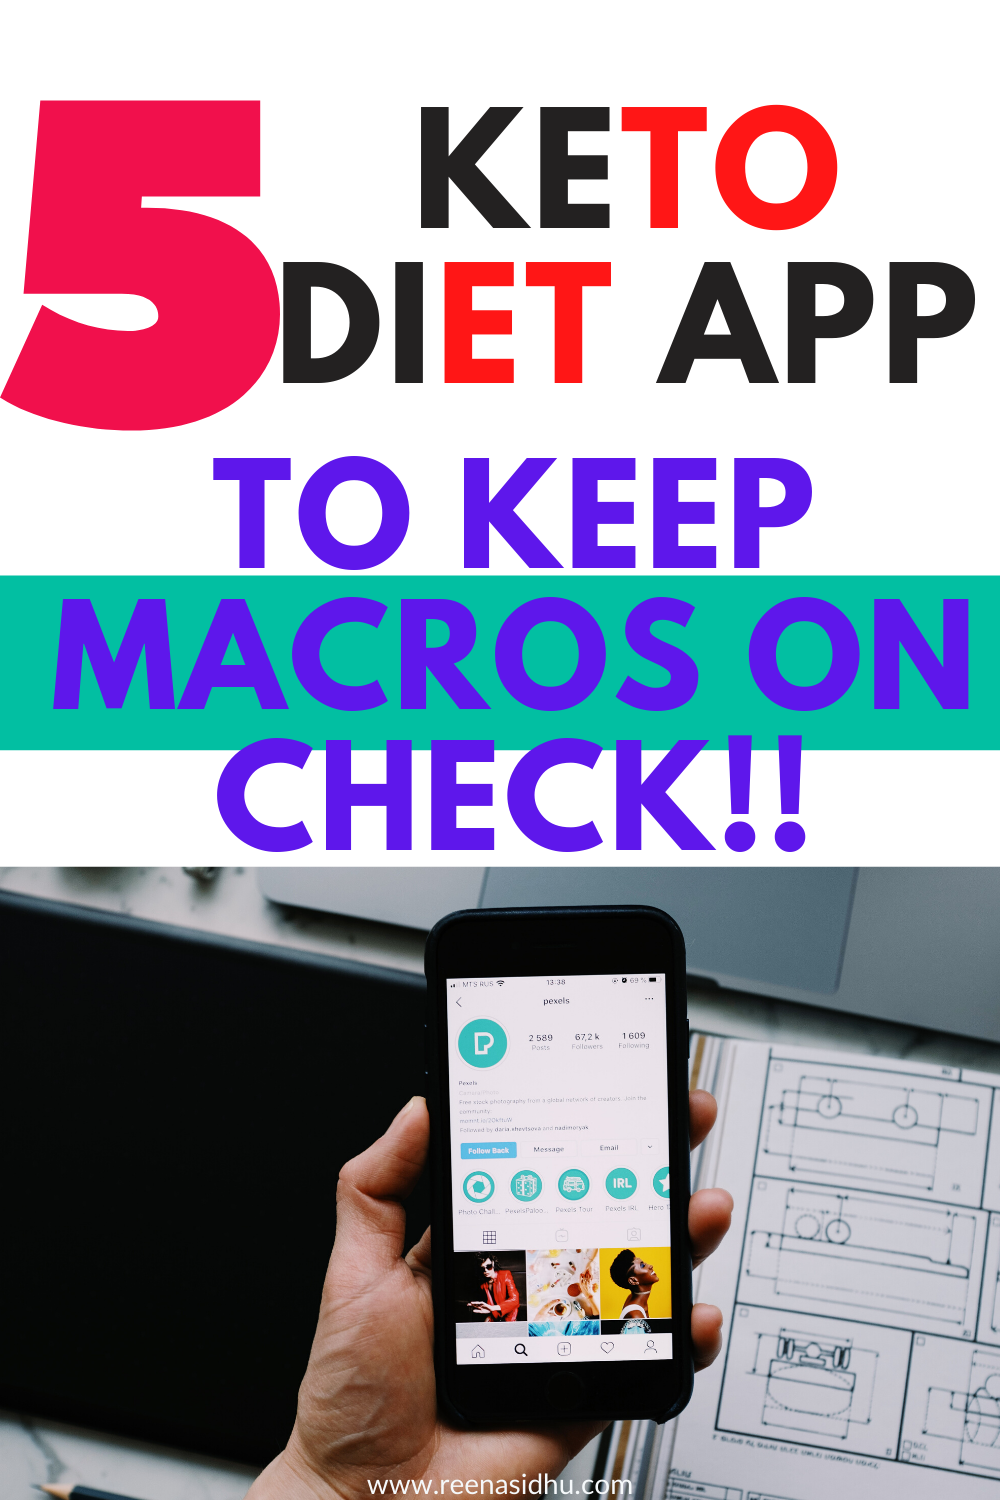 5 Keto Diet Tracker Apps To Keep Your Keto Macros On Check In 2020 Diet Apps Keto Diet Keto